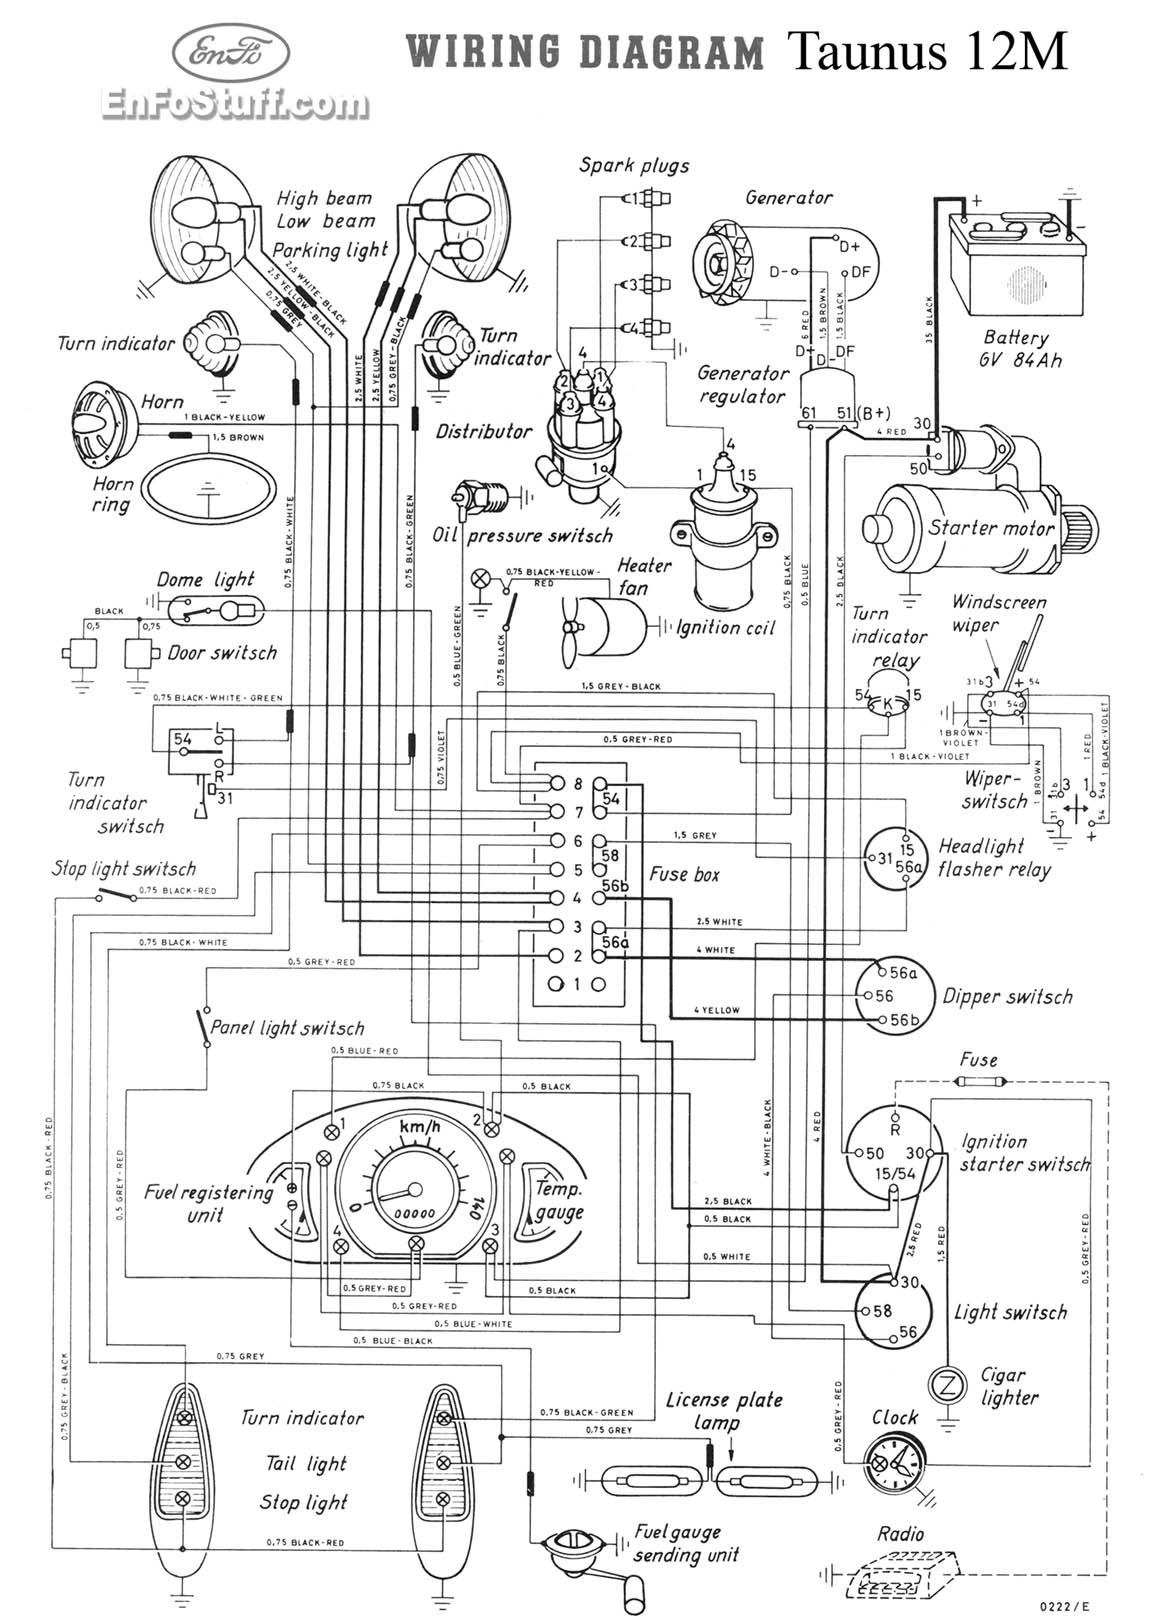 Roadrunner Wiring Diagram Rhino Diagram ~ Elsavadorla